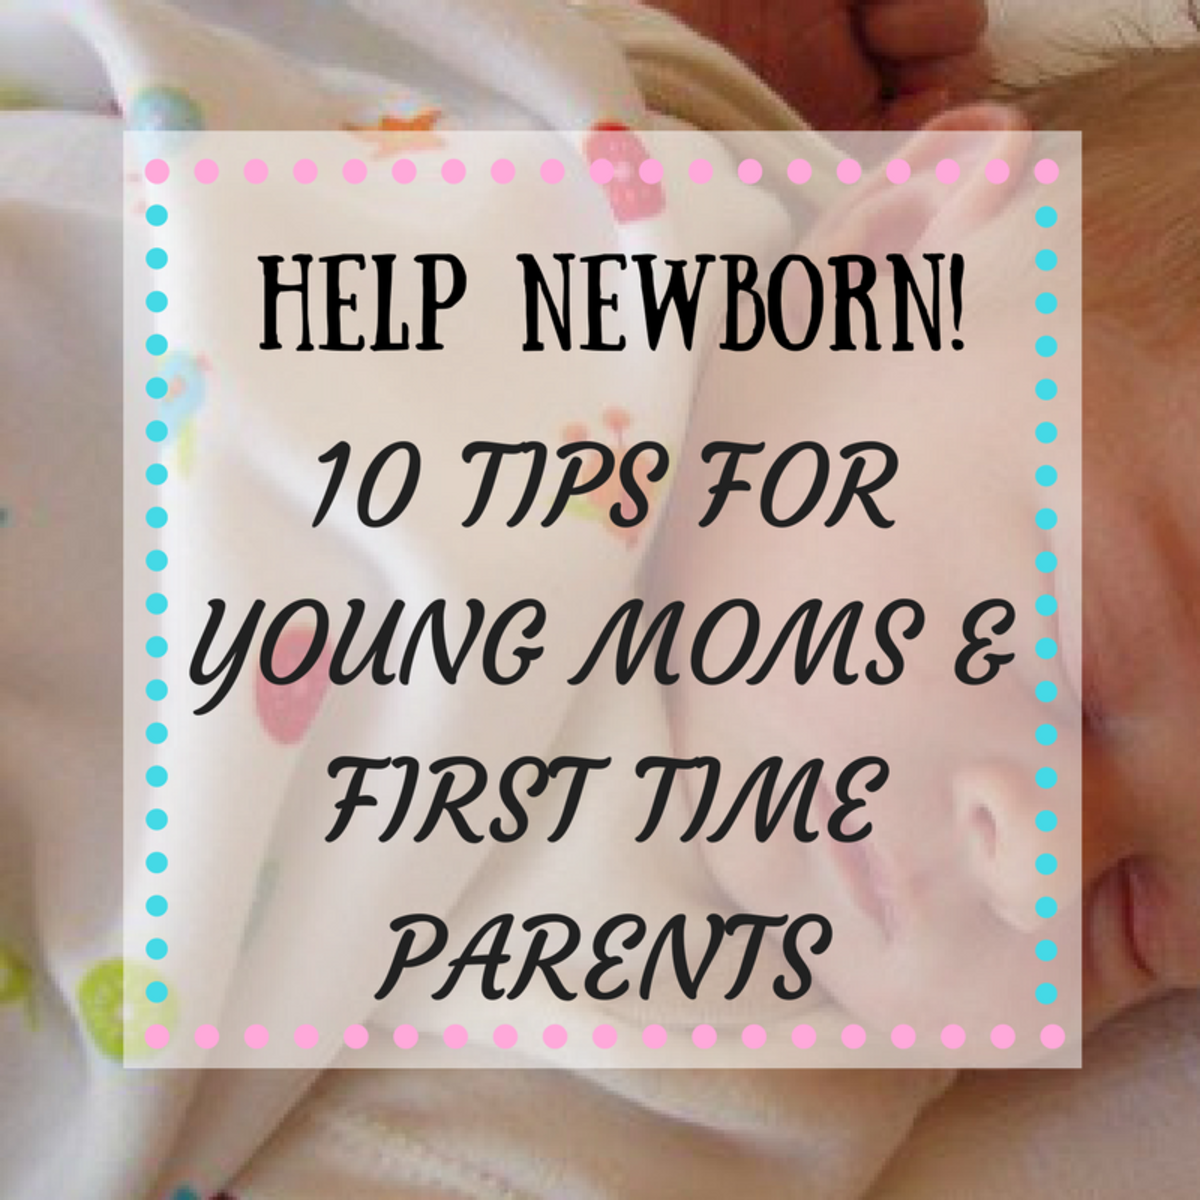 10 Tips for Young Moms & First Time Parents